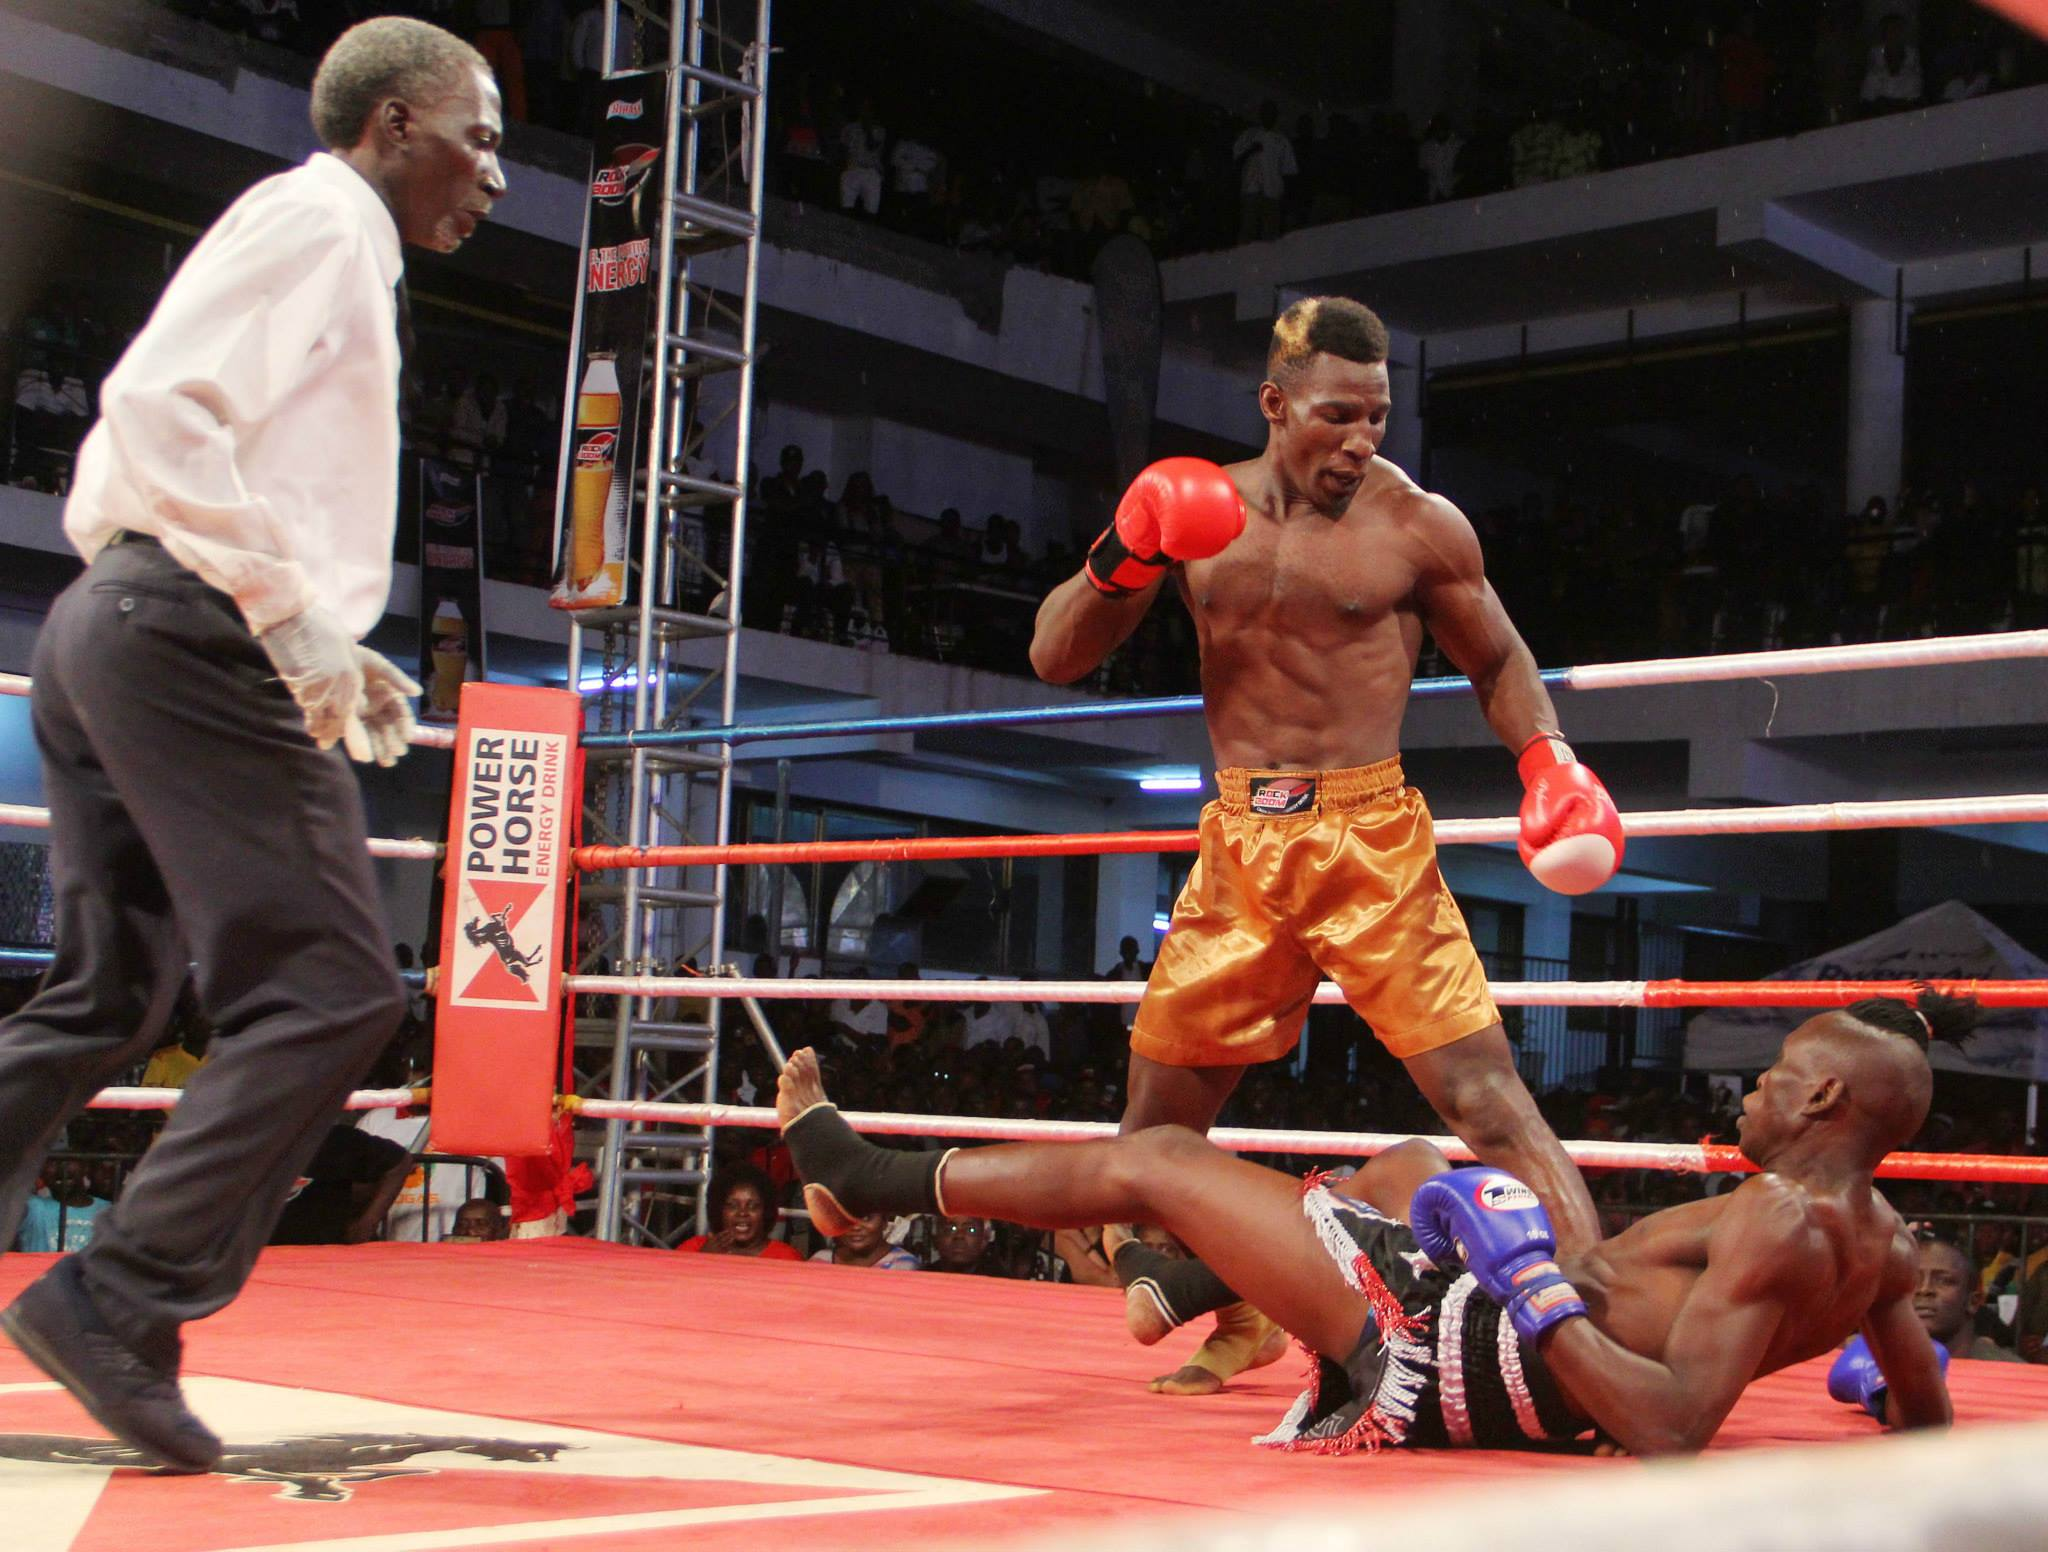 Golola follows on the heavy puch that sends Mugula to th turf to 'finish him off'